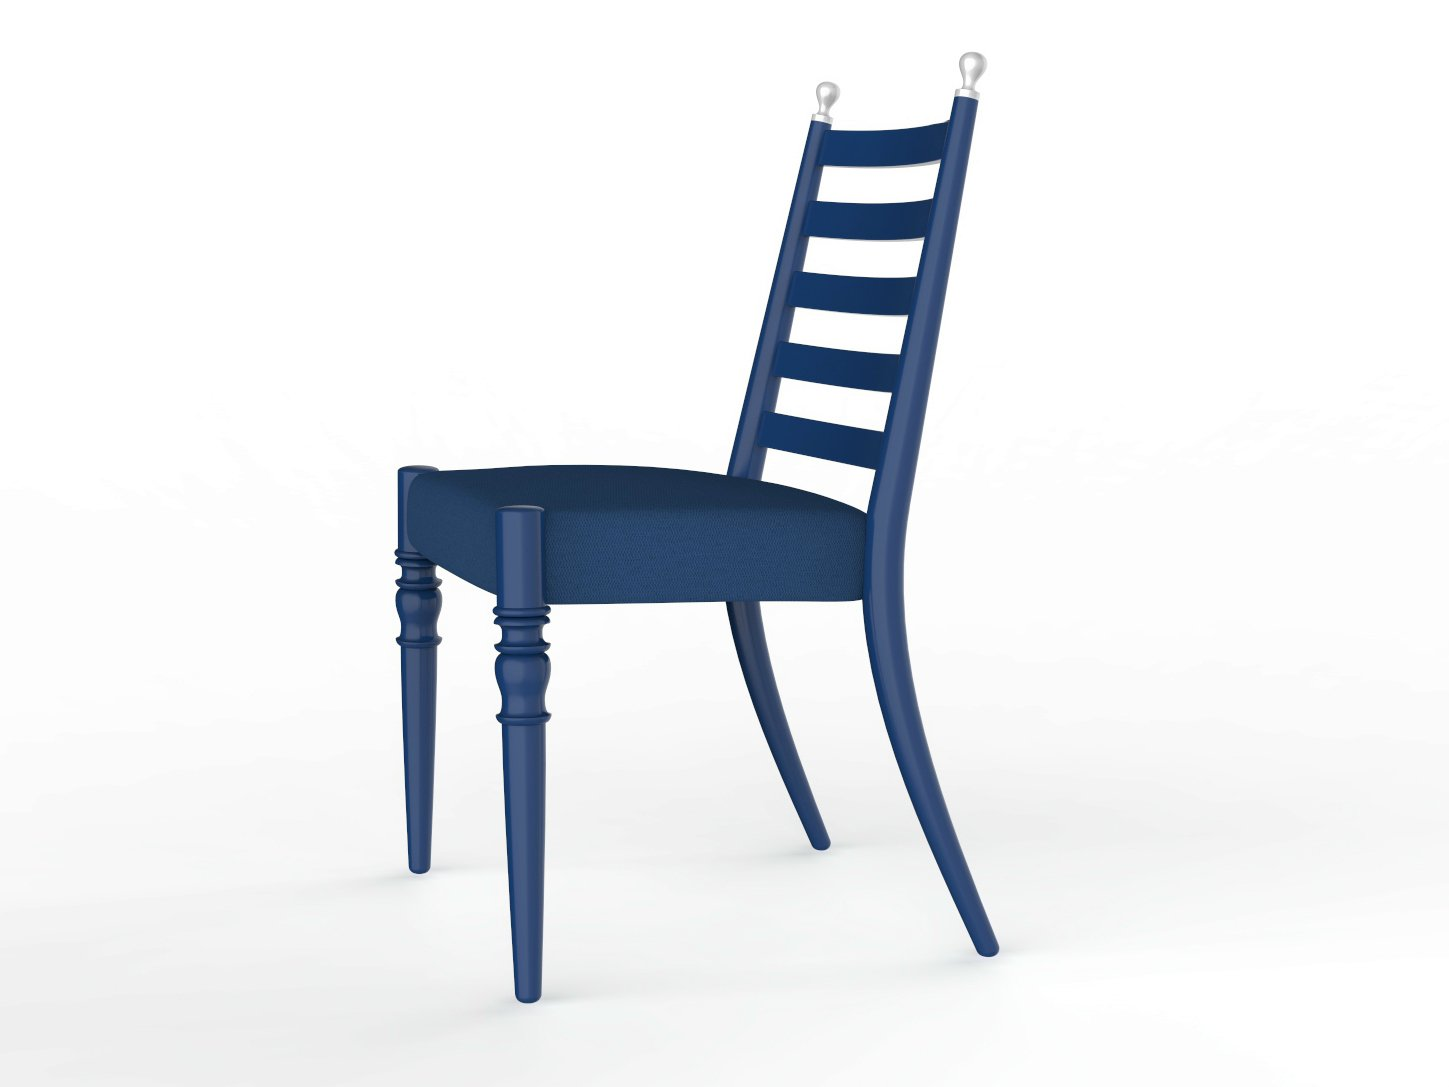 Beech chair century 11 century collection by very wood design marcel